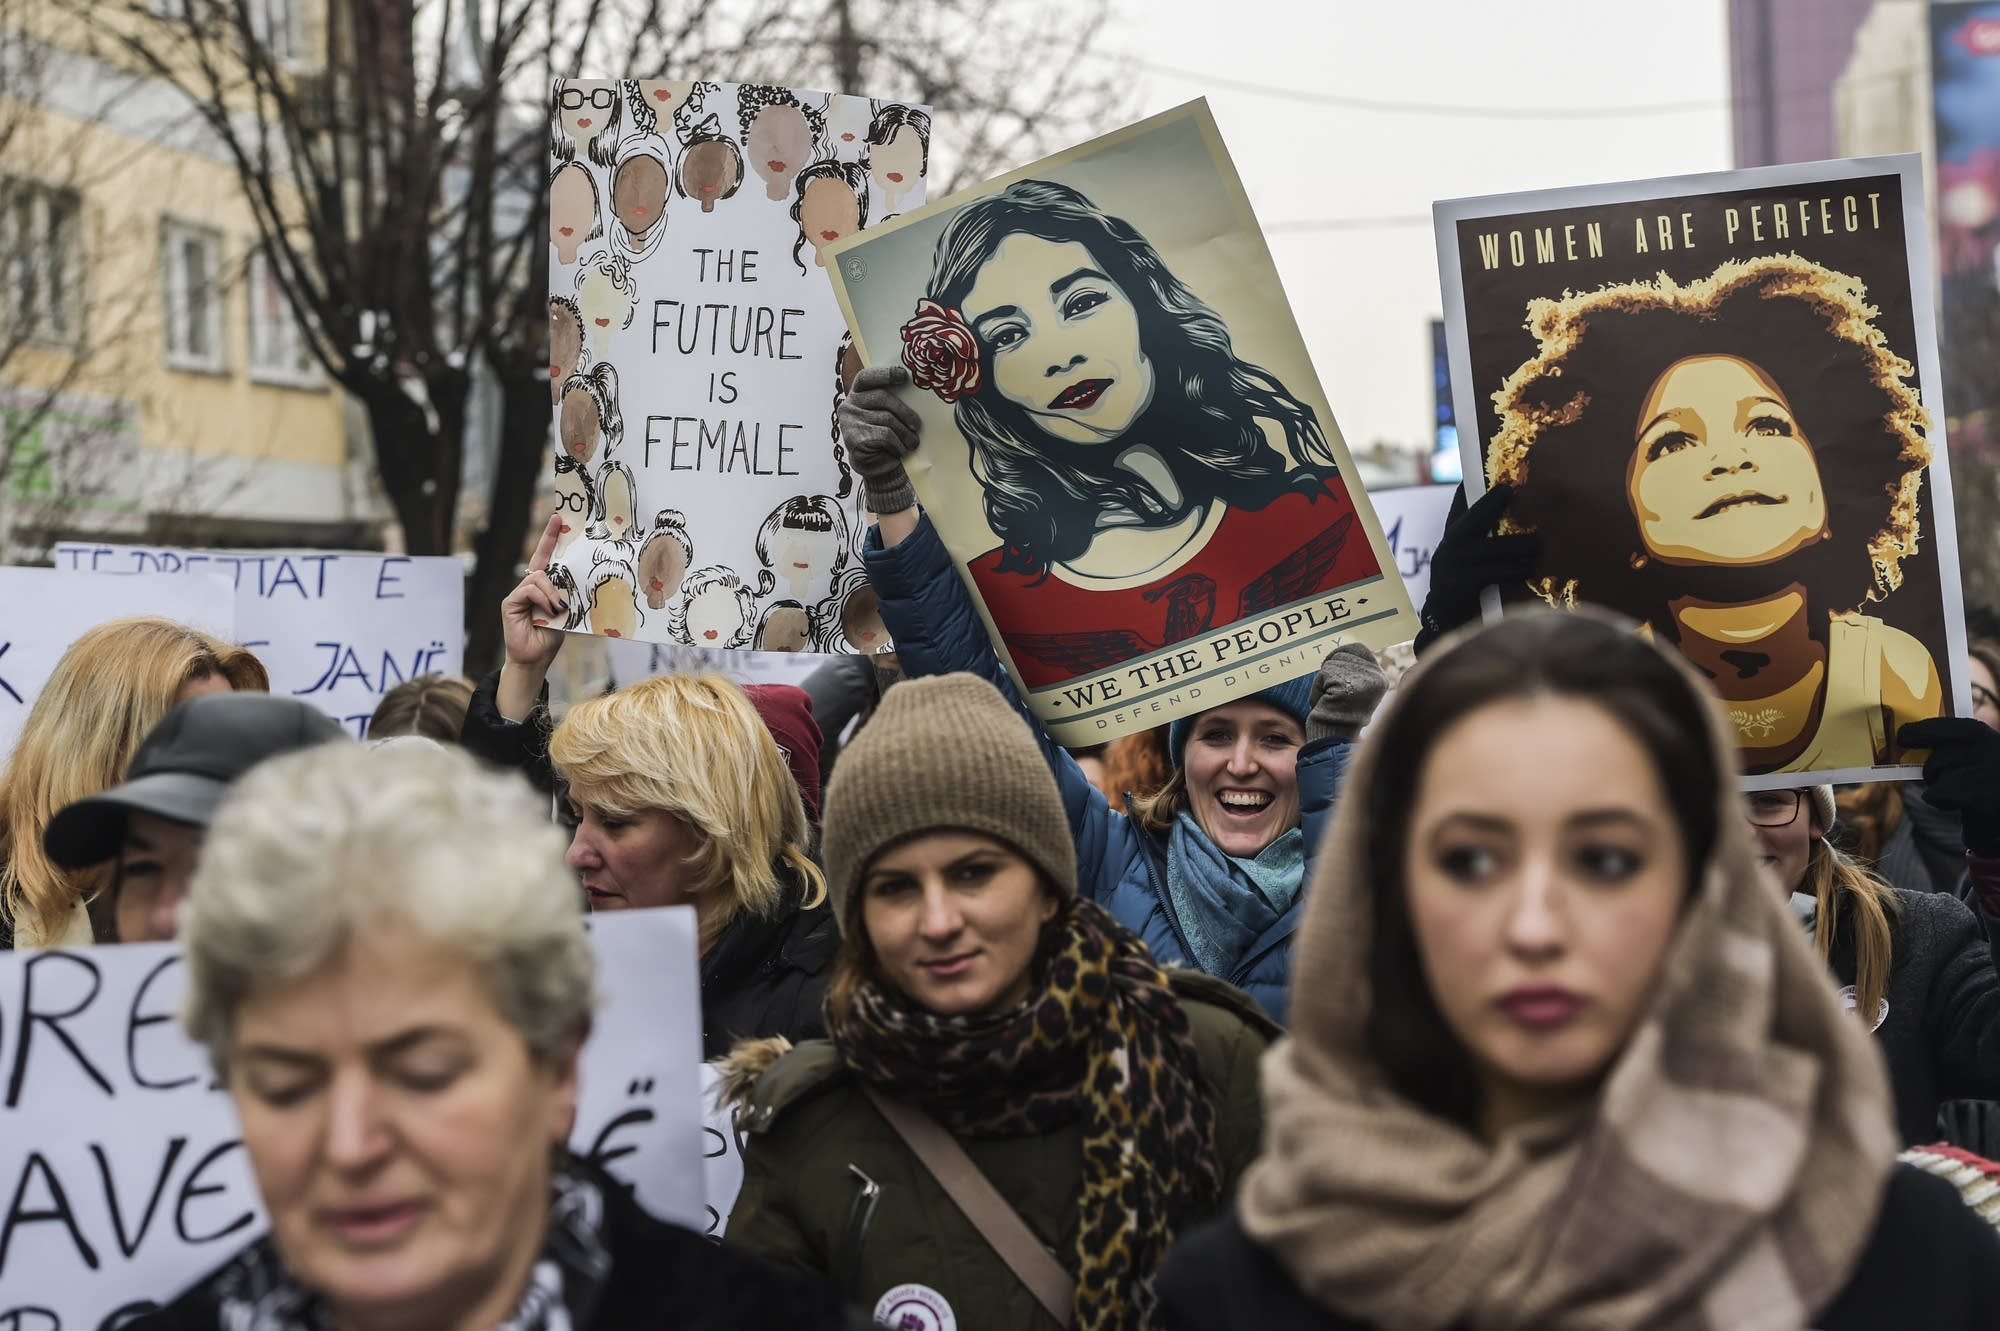 Pristina, Kosovo: Women for women's rights.